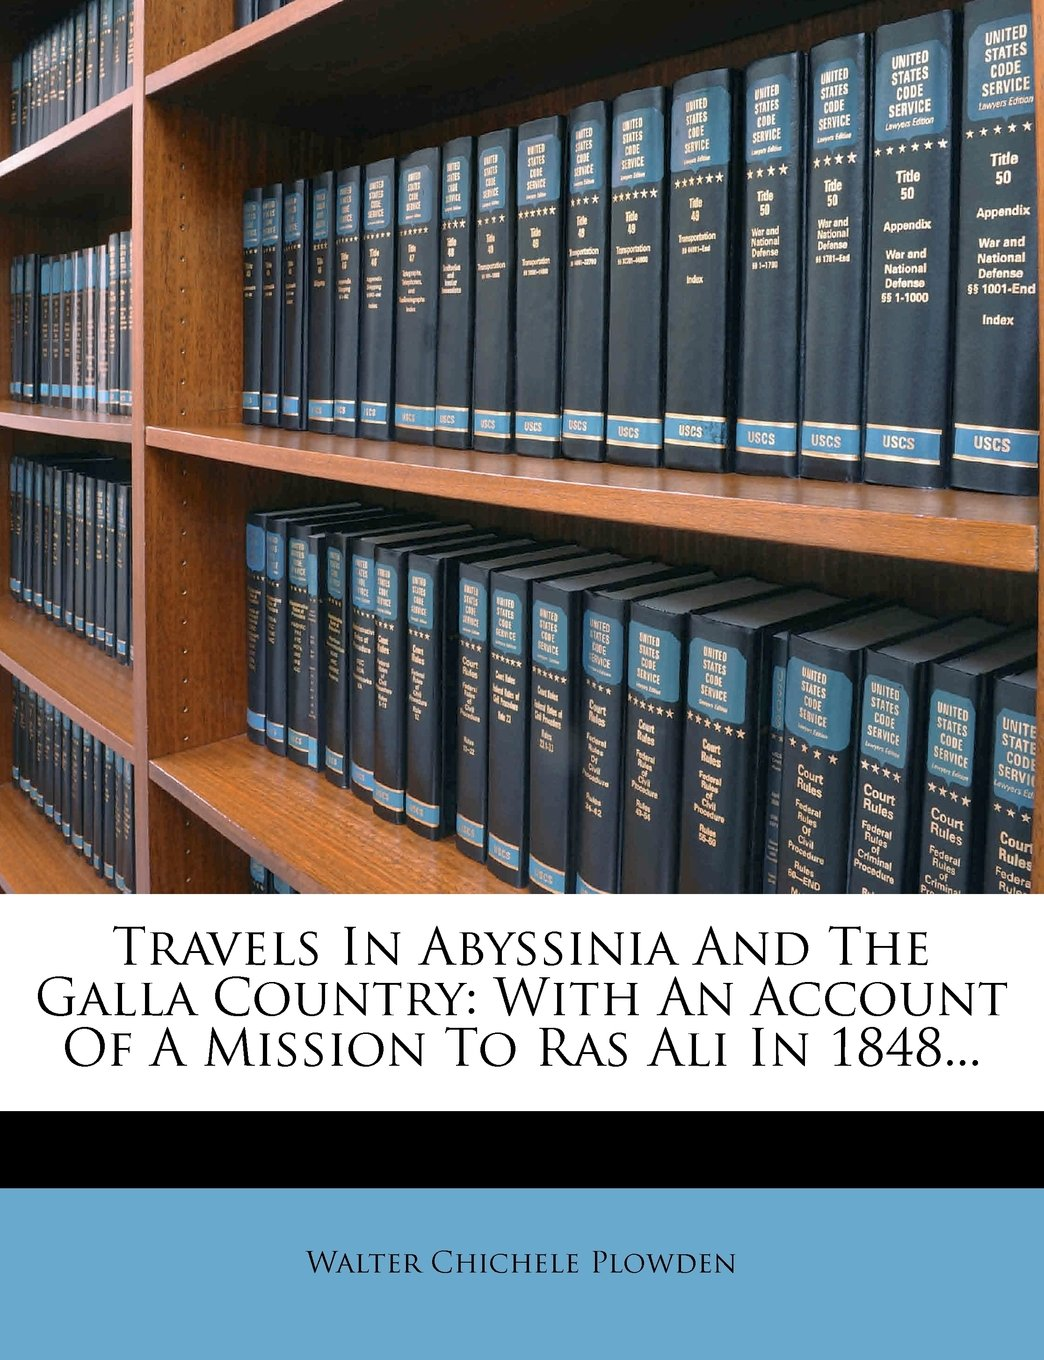 Travels In Abyssinia And The Galla Country: With An Account Of A Mission To Ras Ali In 1848...